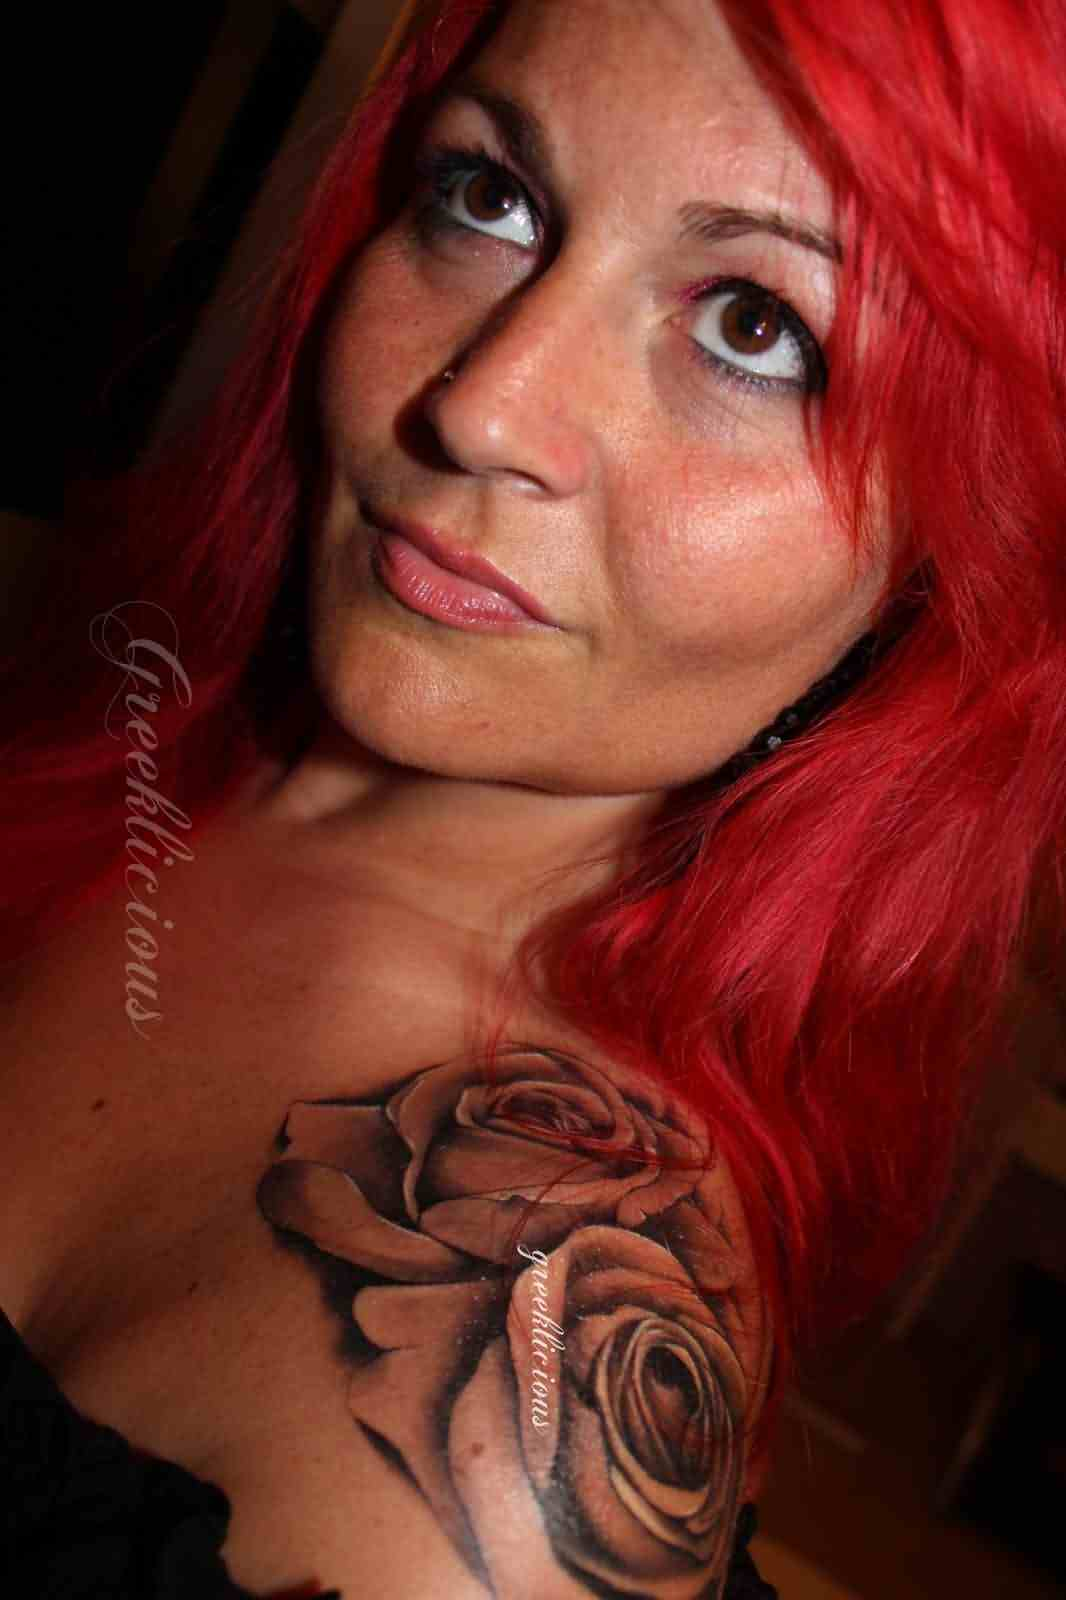 Girl With Red Hairs And Grey Roses Tattoos